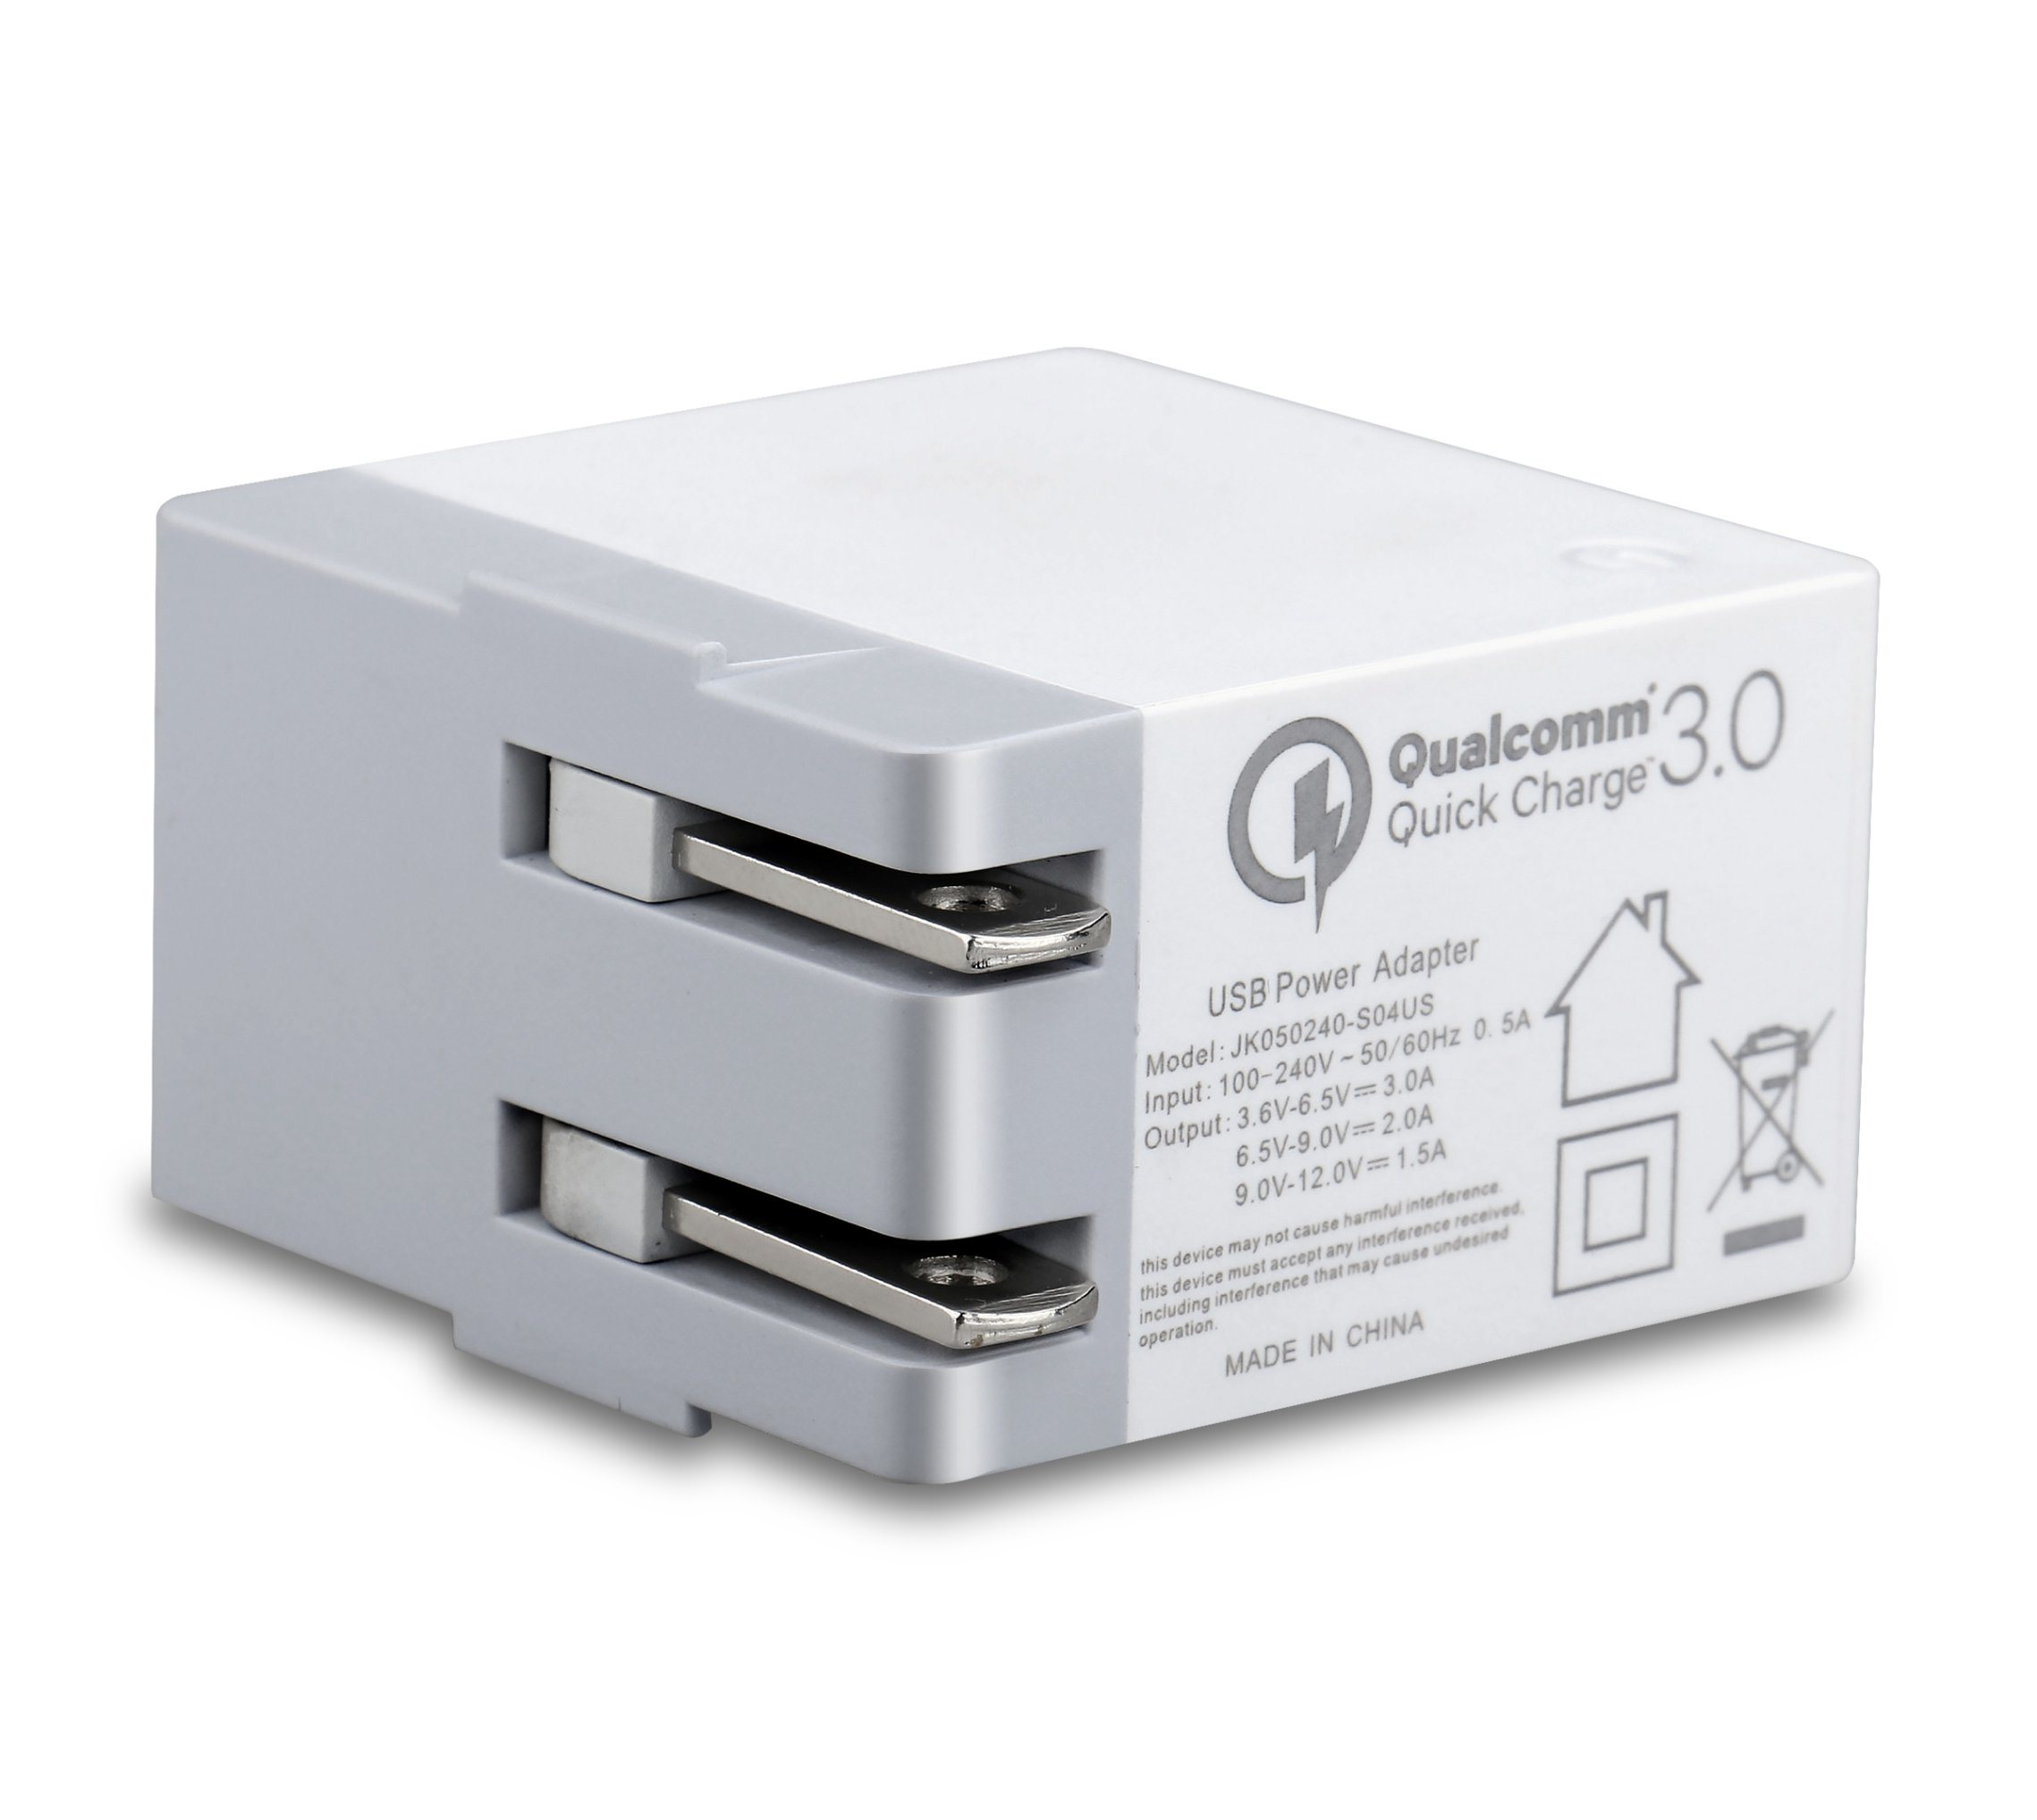 QC3.0 Quick Charging Portable USB Travel Wall Charger